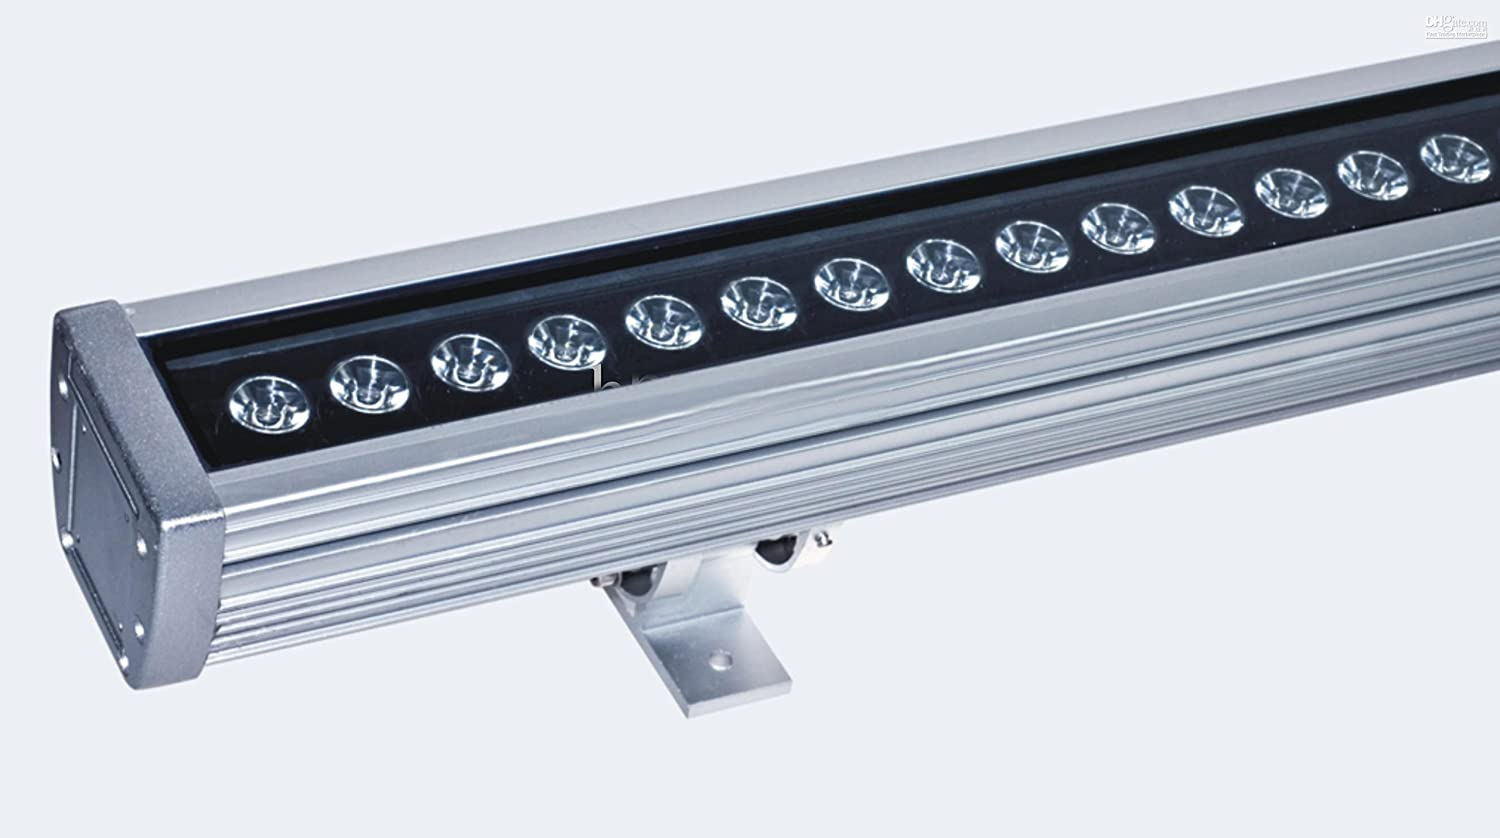 Nobel Led 20w High Power Wall Washer Outdoor Decorative Light Which Can Be Used For Lighting Your House Buildings Clubs Hotels Stages Parks Plazas Commercial Building Facades Art Galleries Green Landscape Amazon In